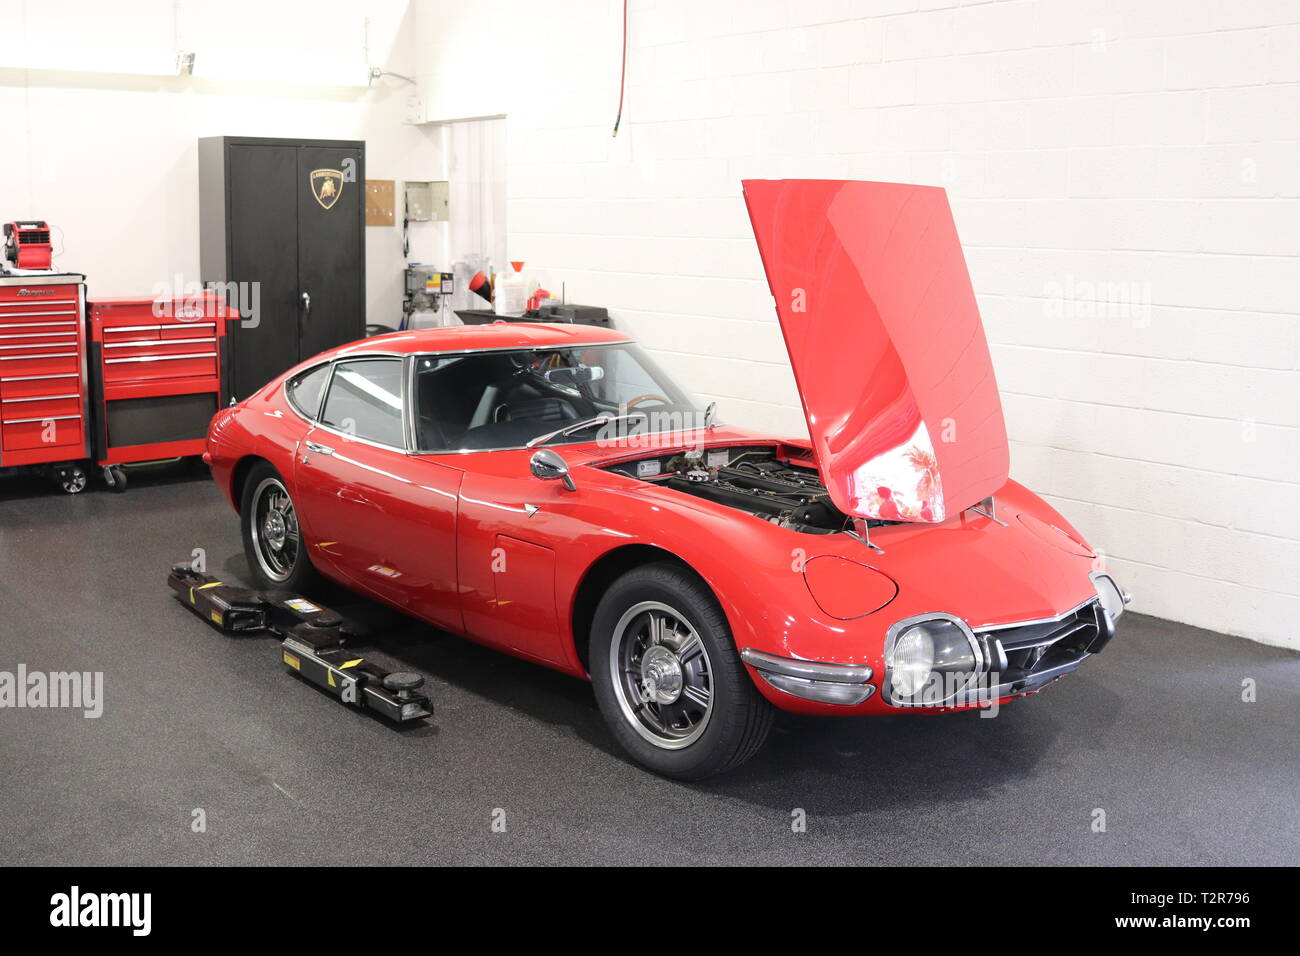 Classic Toyota 2000GT on the shop floor. Taken at a local car show near Fort Lauderdale, Florida, USA. Classic car lovers will recognize this icon. Stock Photo